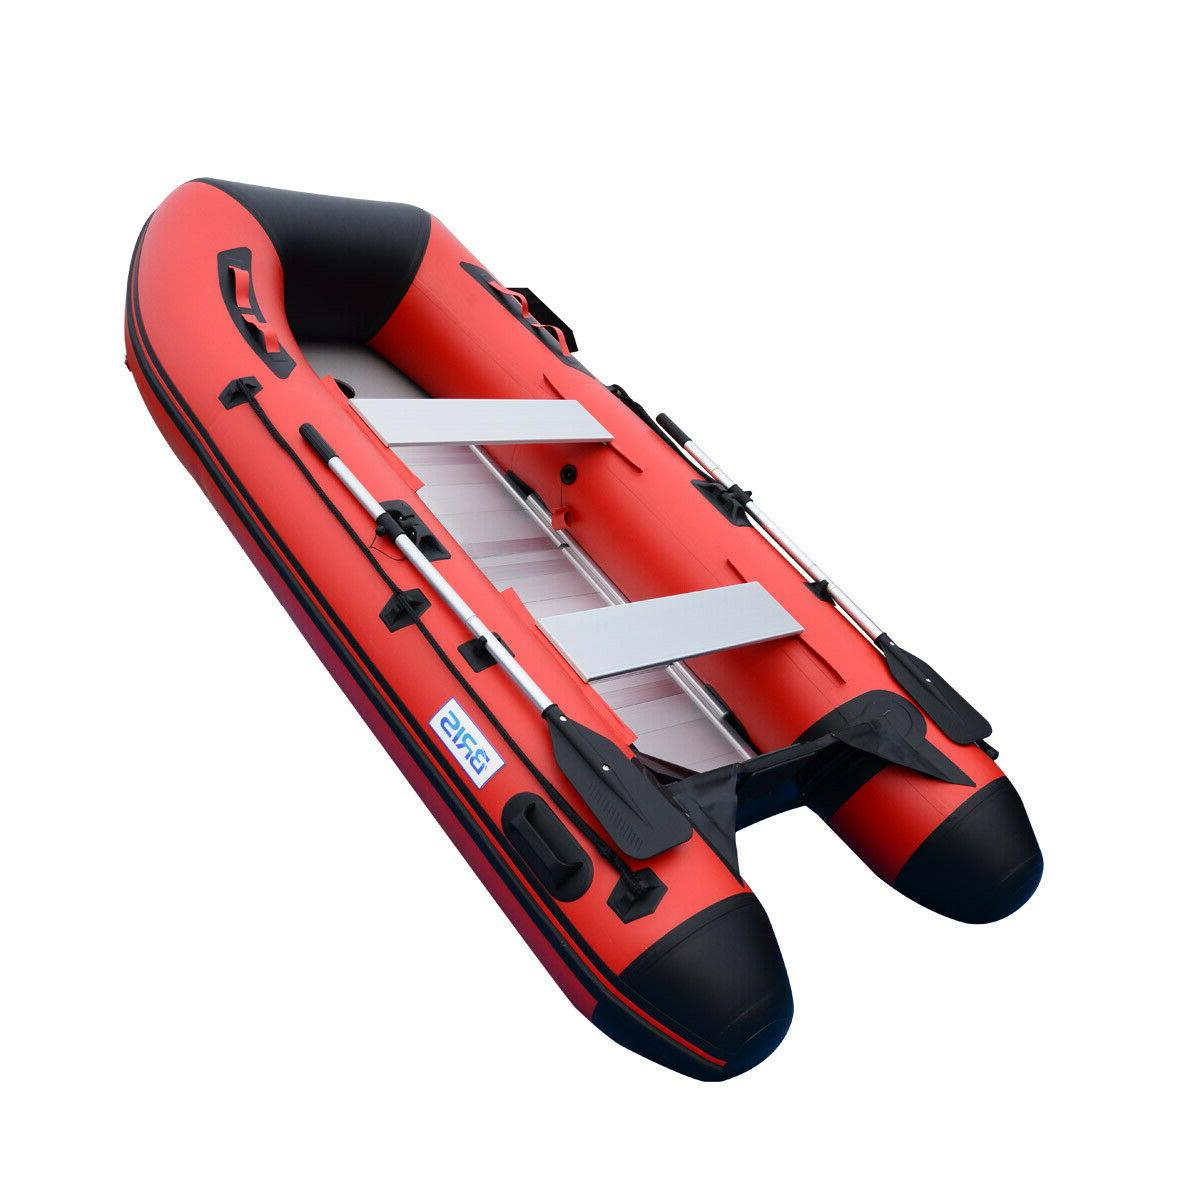 BRIS 10ft Inflatable Boat Inflatable Dinghy Yacht Tender Fis